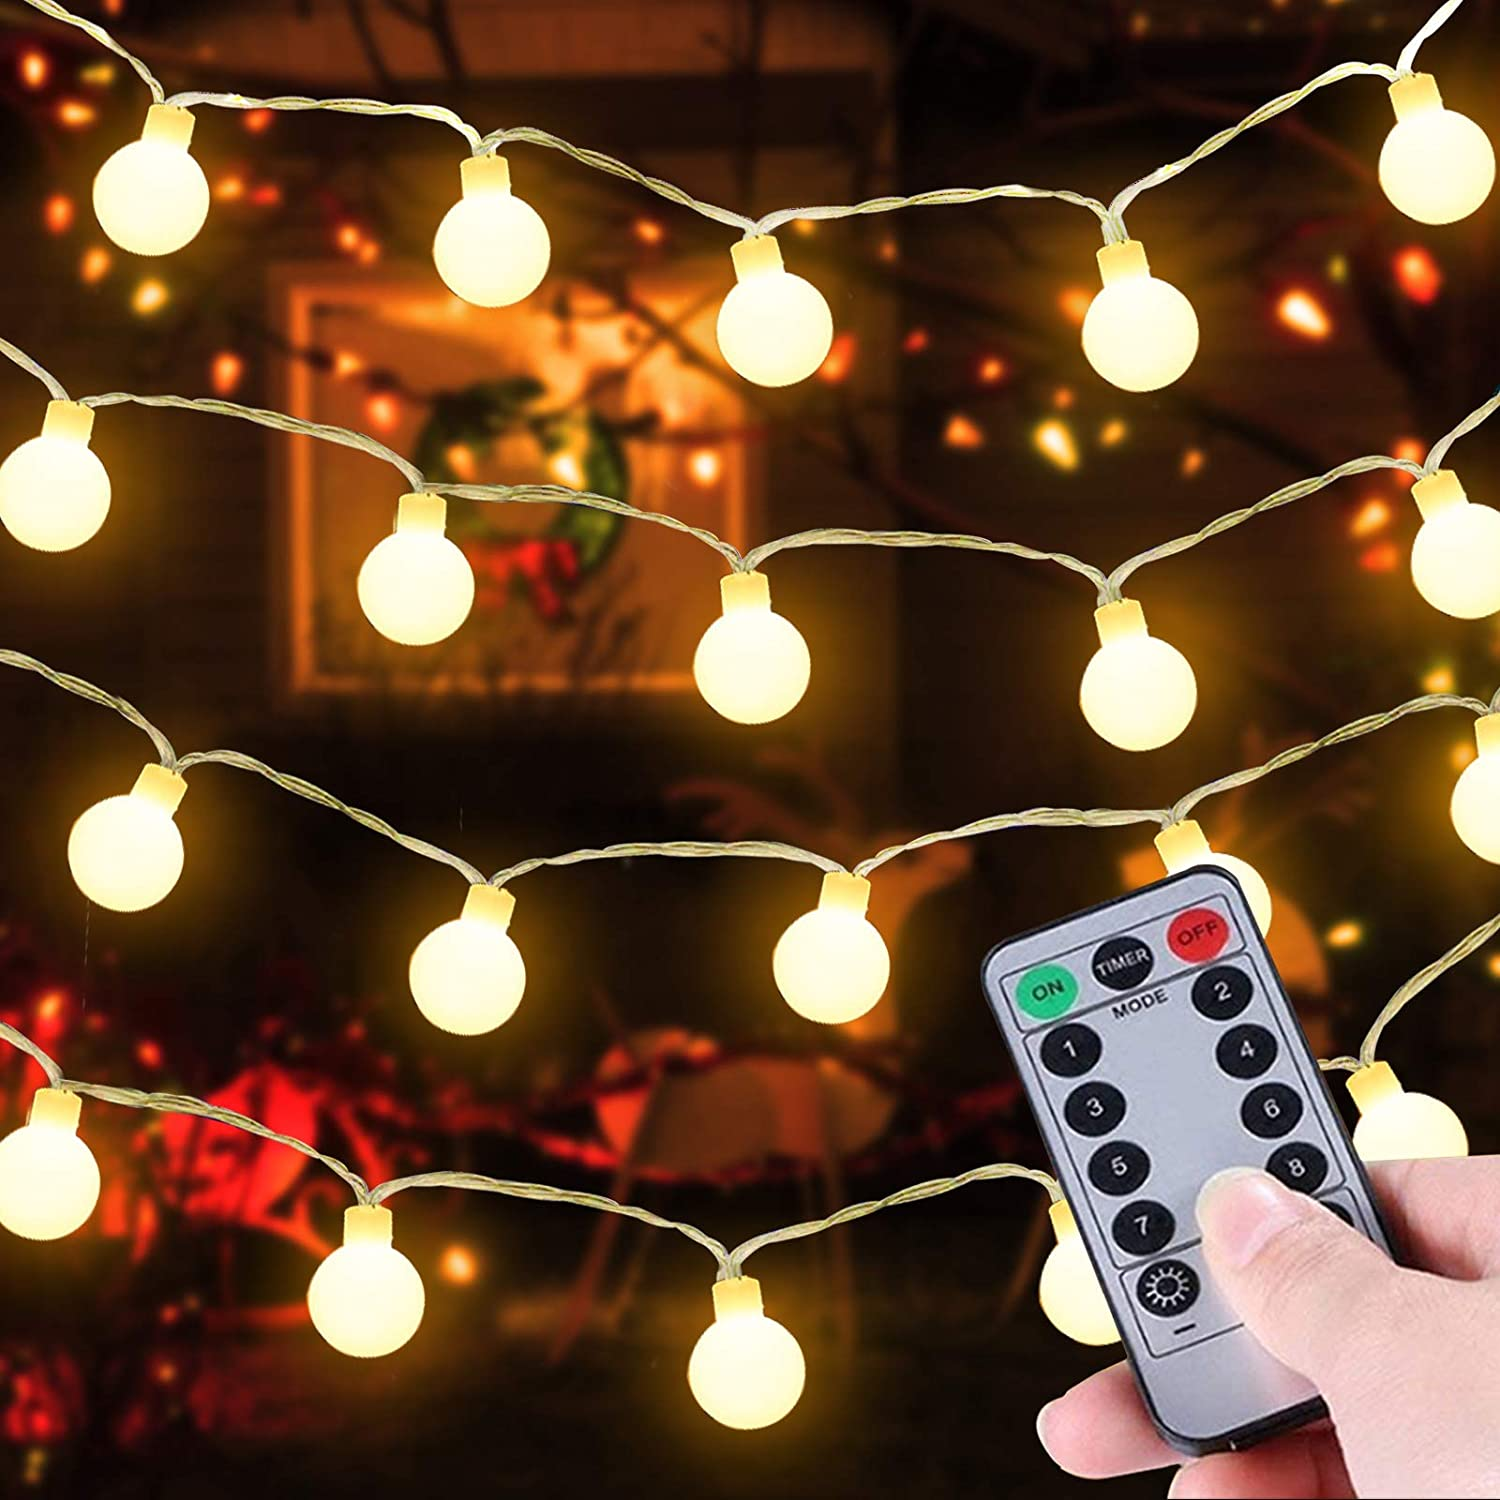 TURNMEON 33 Ft 100 LED Globe Ball String Lights Christmas Decor Battery Operated Fairy Lights Remote Control Timer 8 Mode Waterproof Holiday Xmas Decor Indoor Outdoor Home Party Bedroom (Warm White)